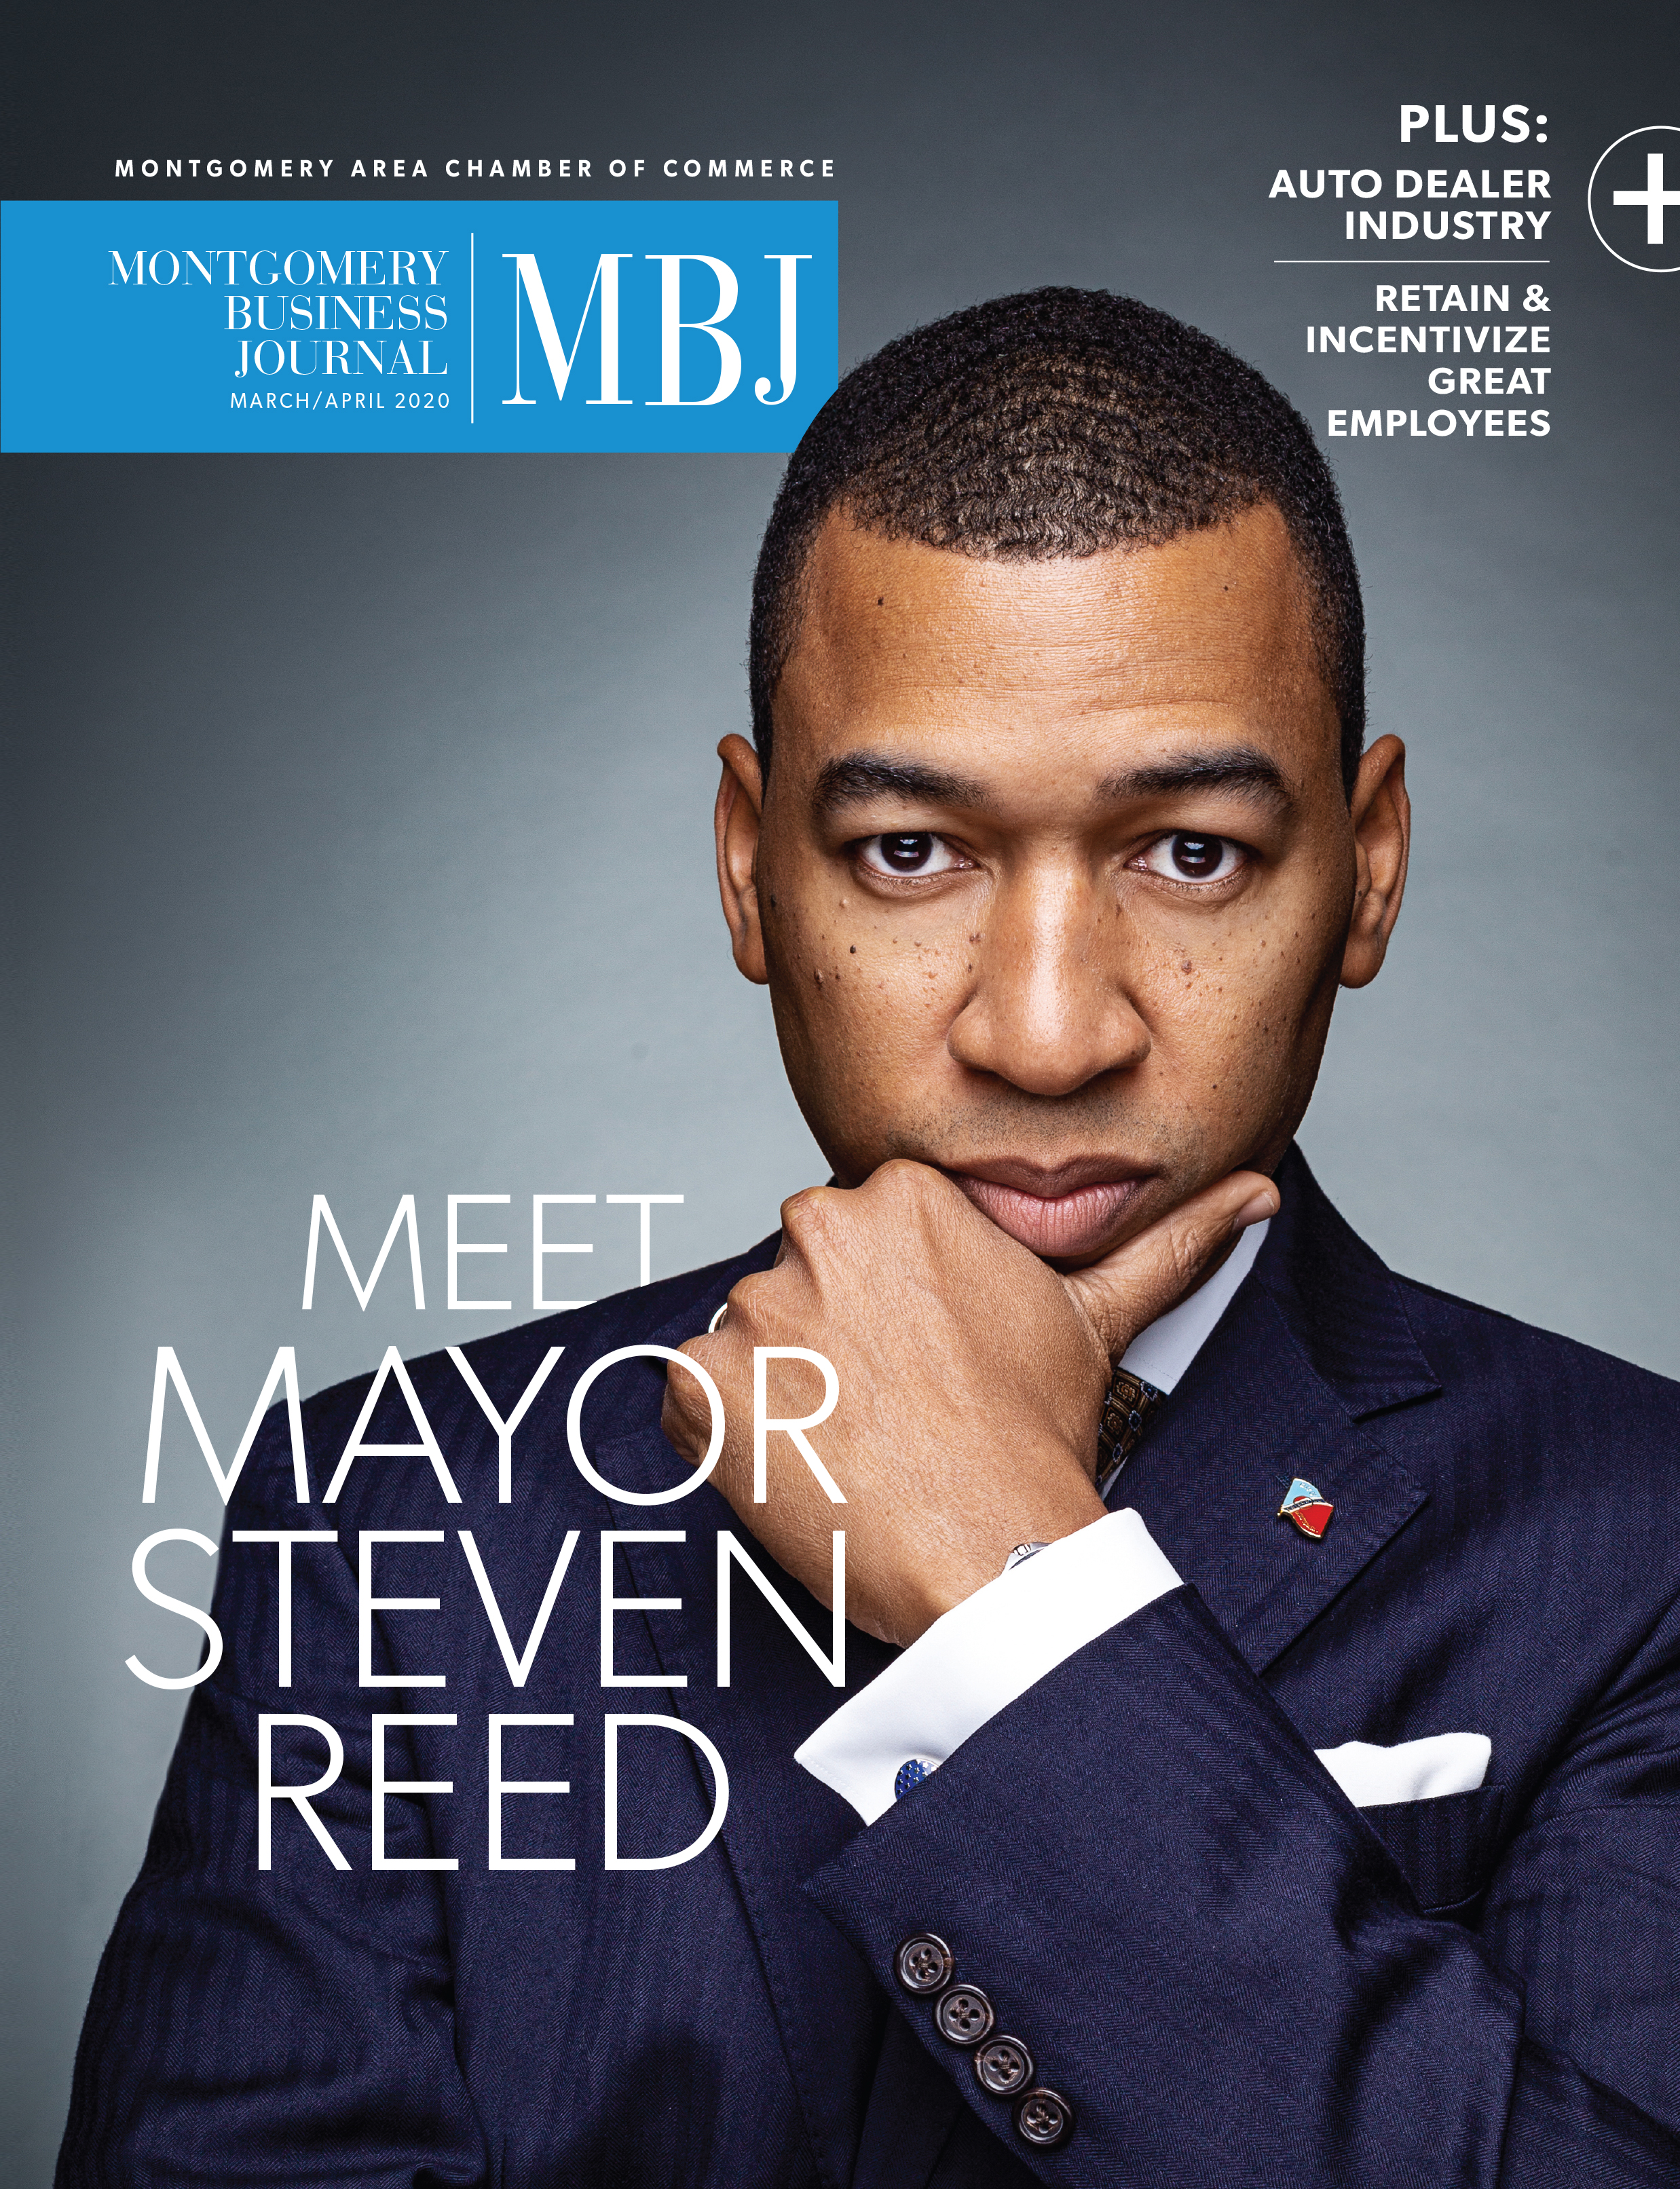 March 2020 MBJ, Mayor Steven L. Reed, Montgomery AL, Montgomery Chamber of Commerce, Montgomery Chamber, City of Montgomery, Montgomery Business Journal, MBJ